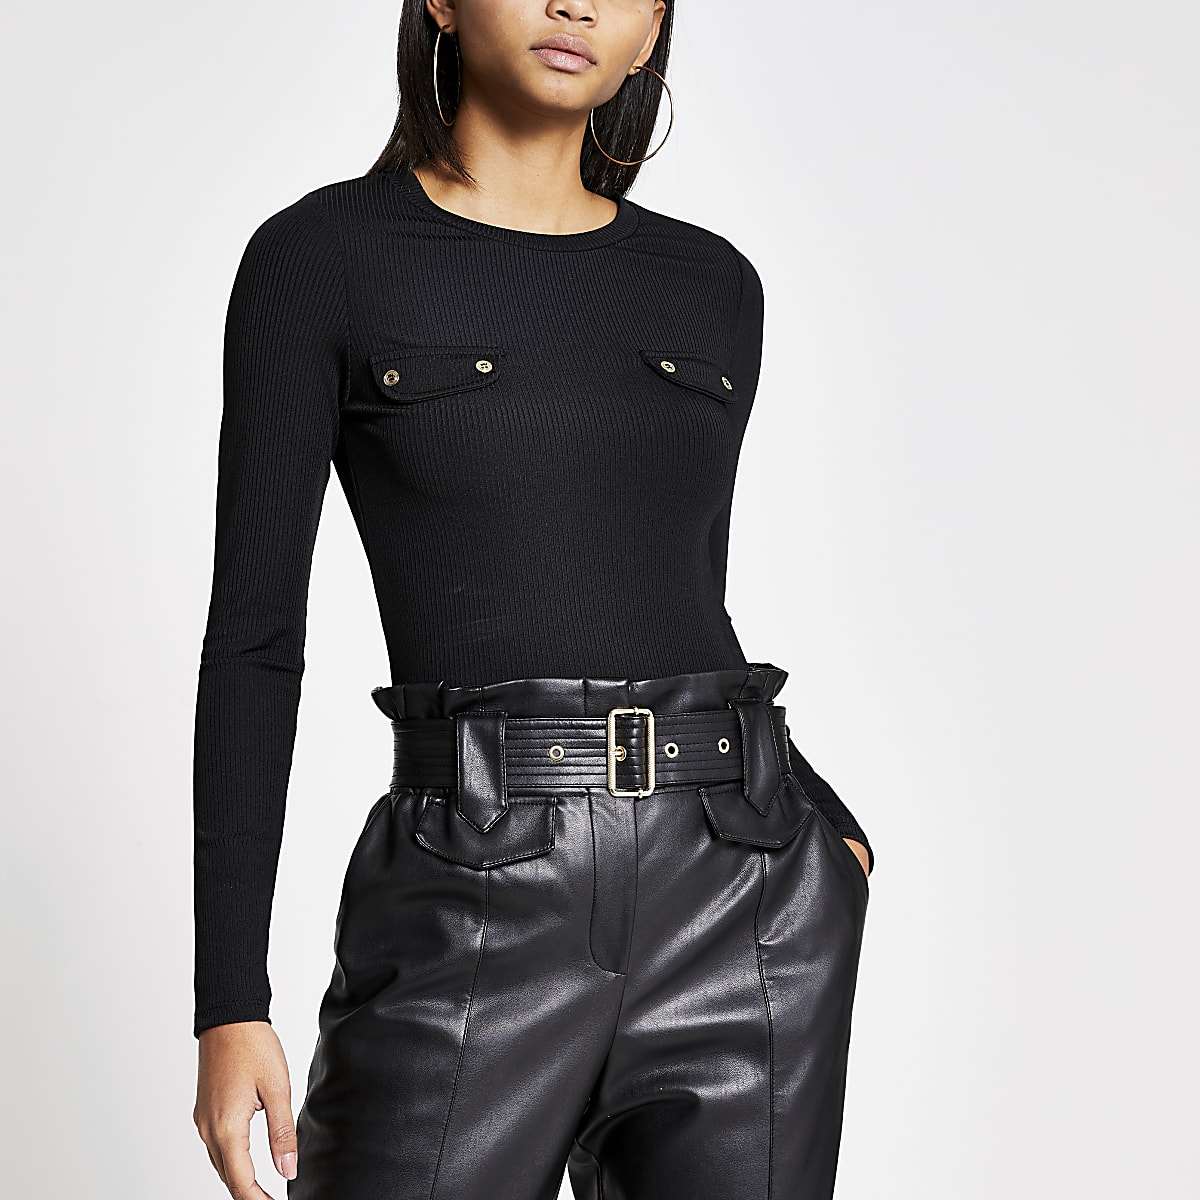 Black long sleeve chest pocket ribbed top